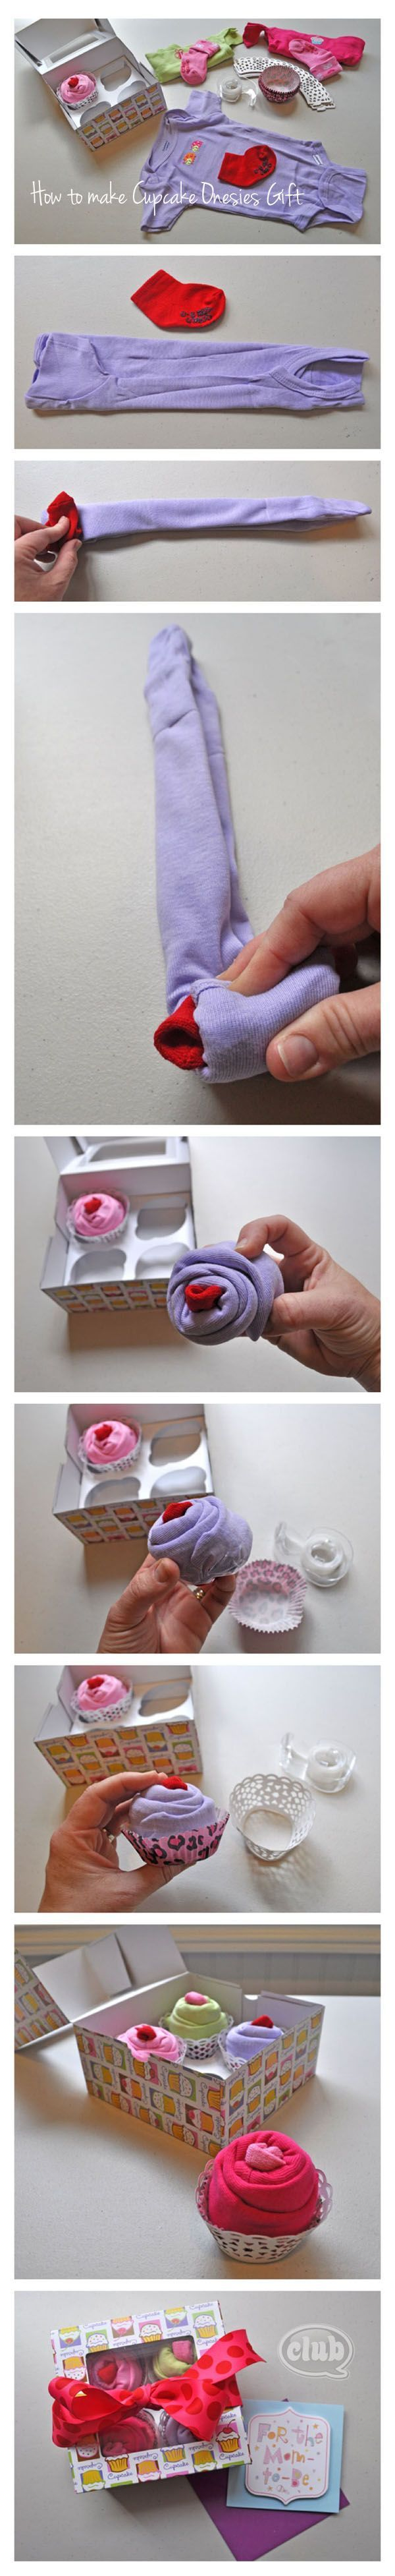 So cute! Cupcake onesies baby gift - perfect homemade gift idea.